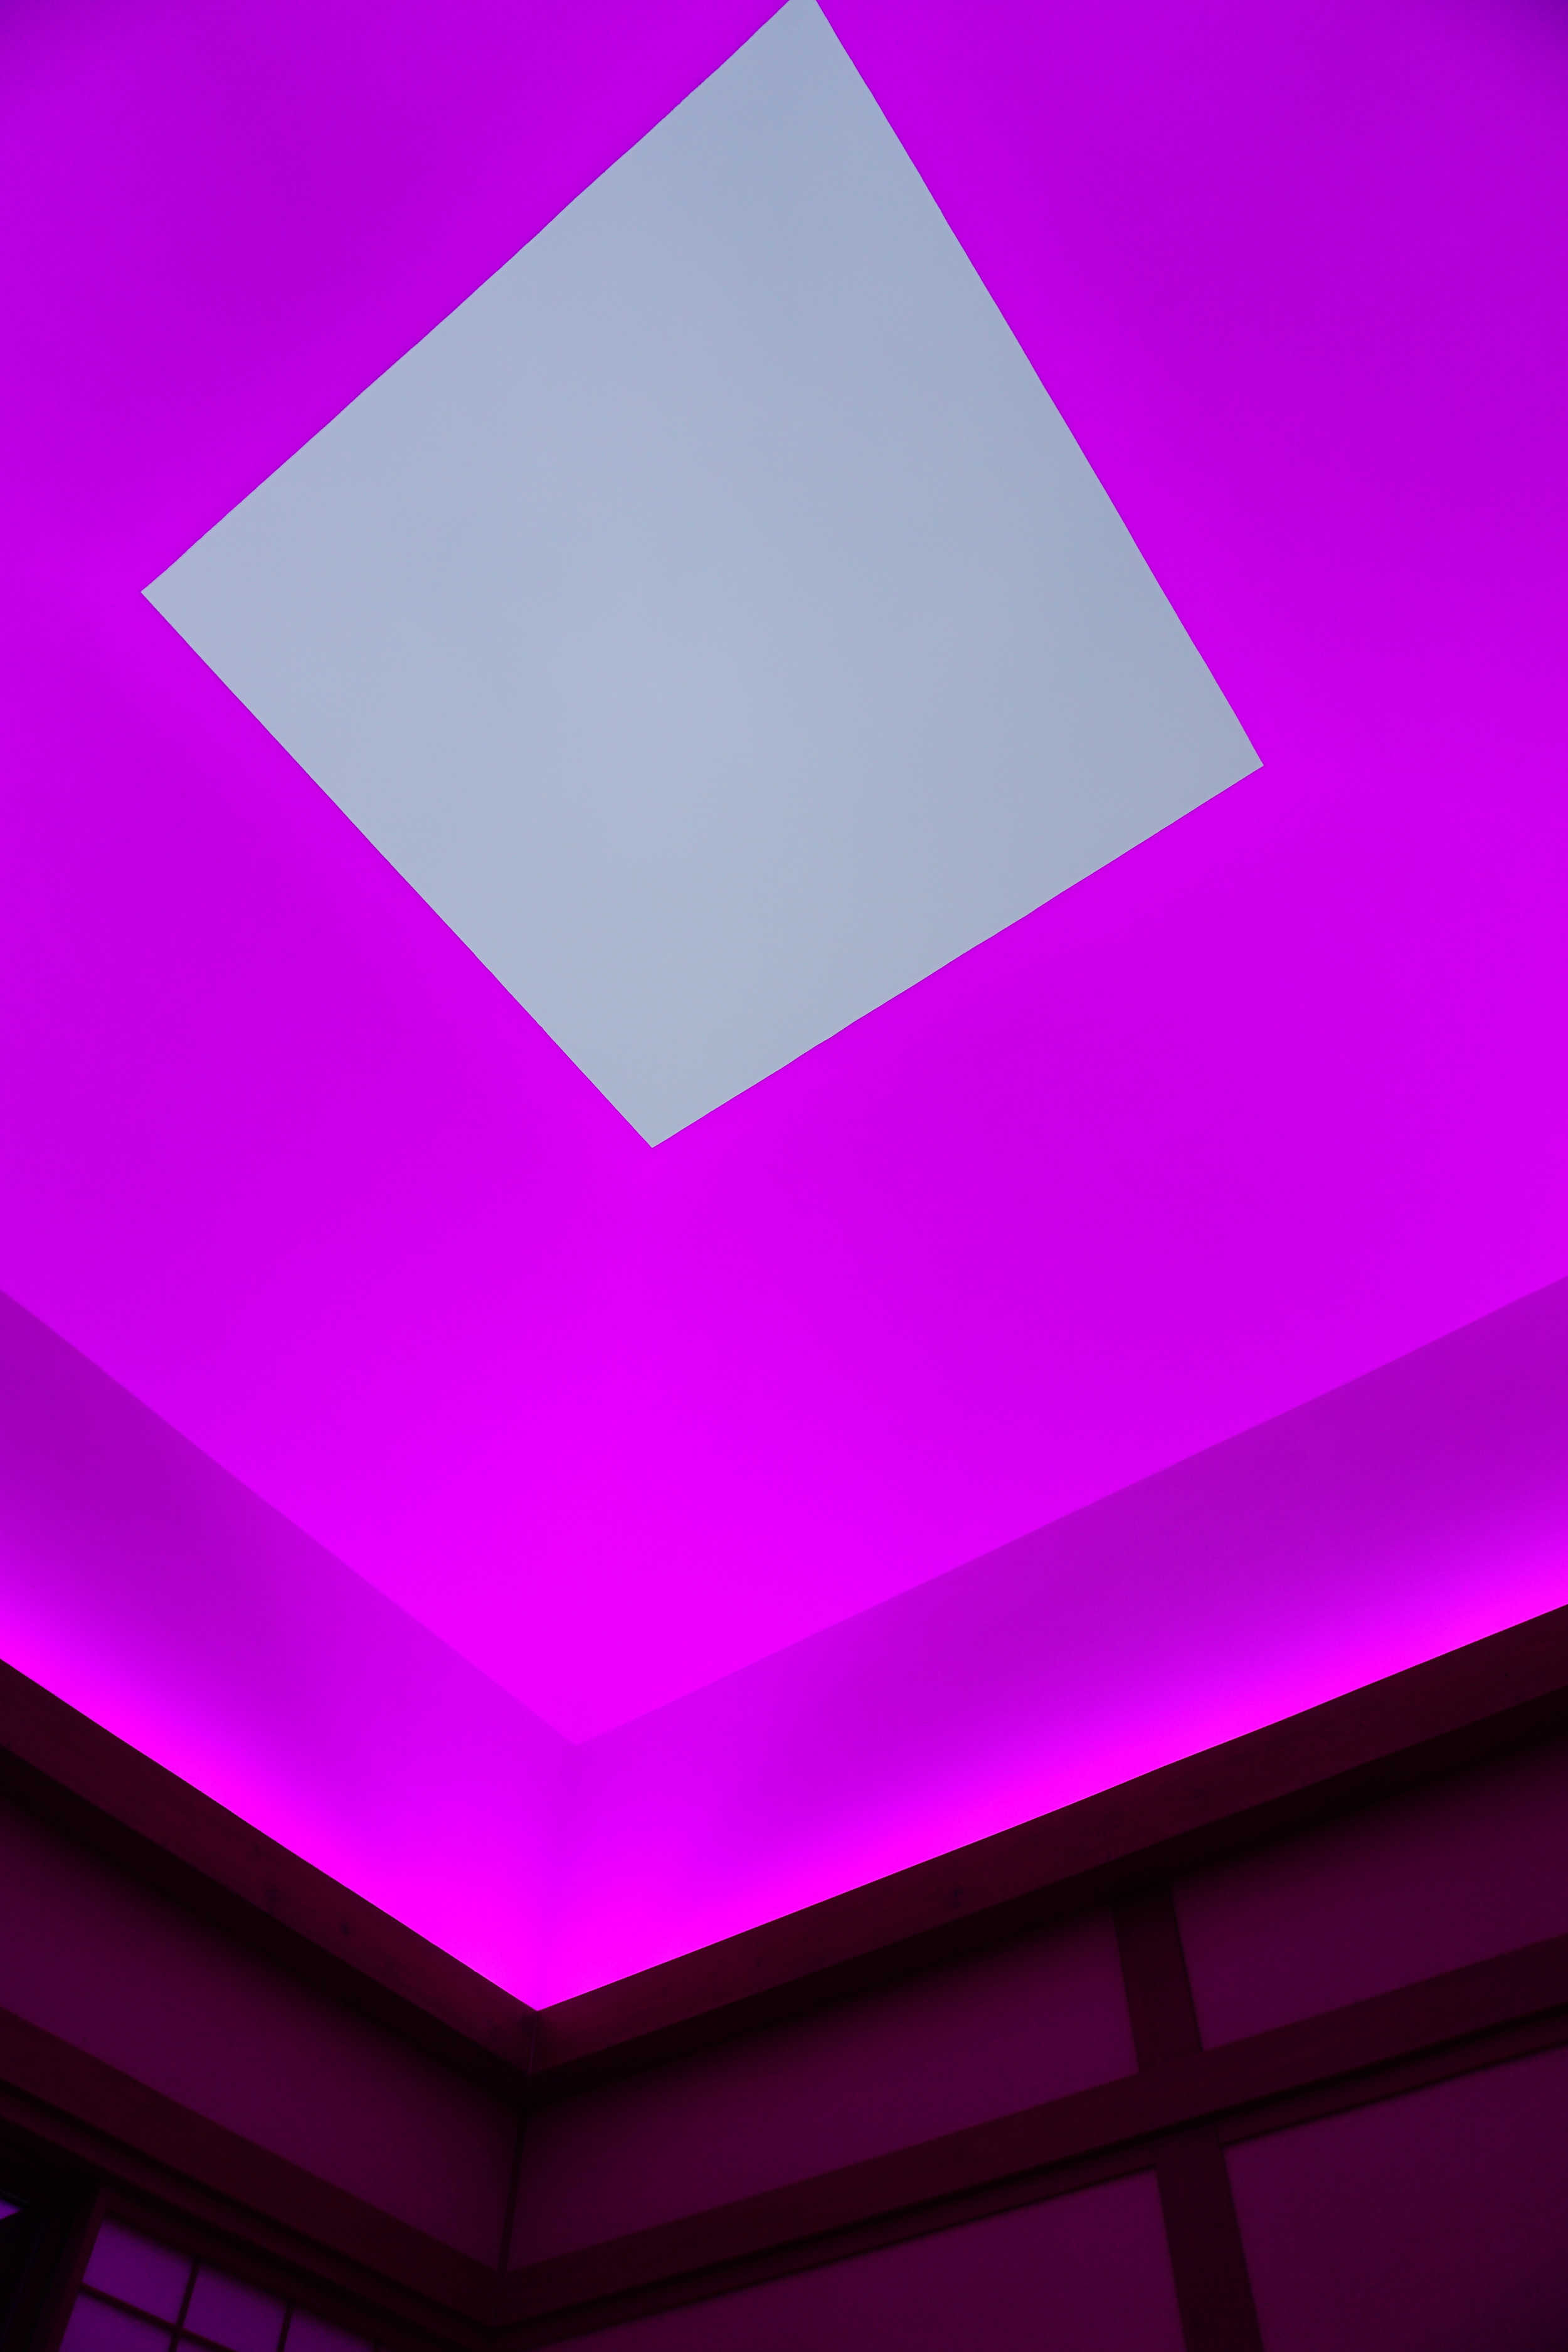 Sunset sky from James Turrell's House of Light.  The highlight of my weekend.